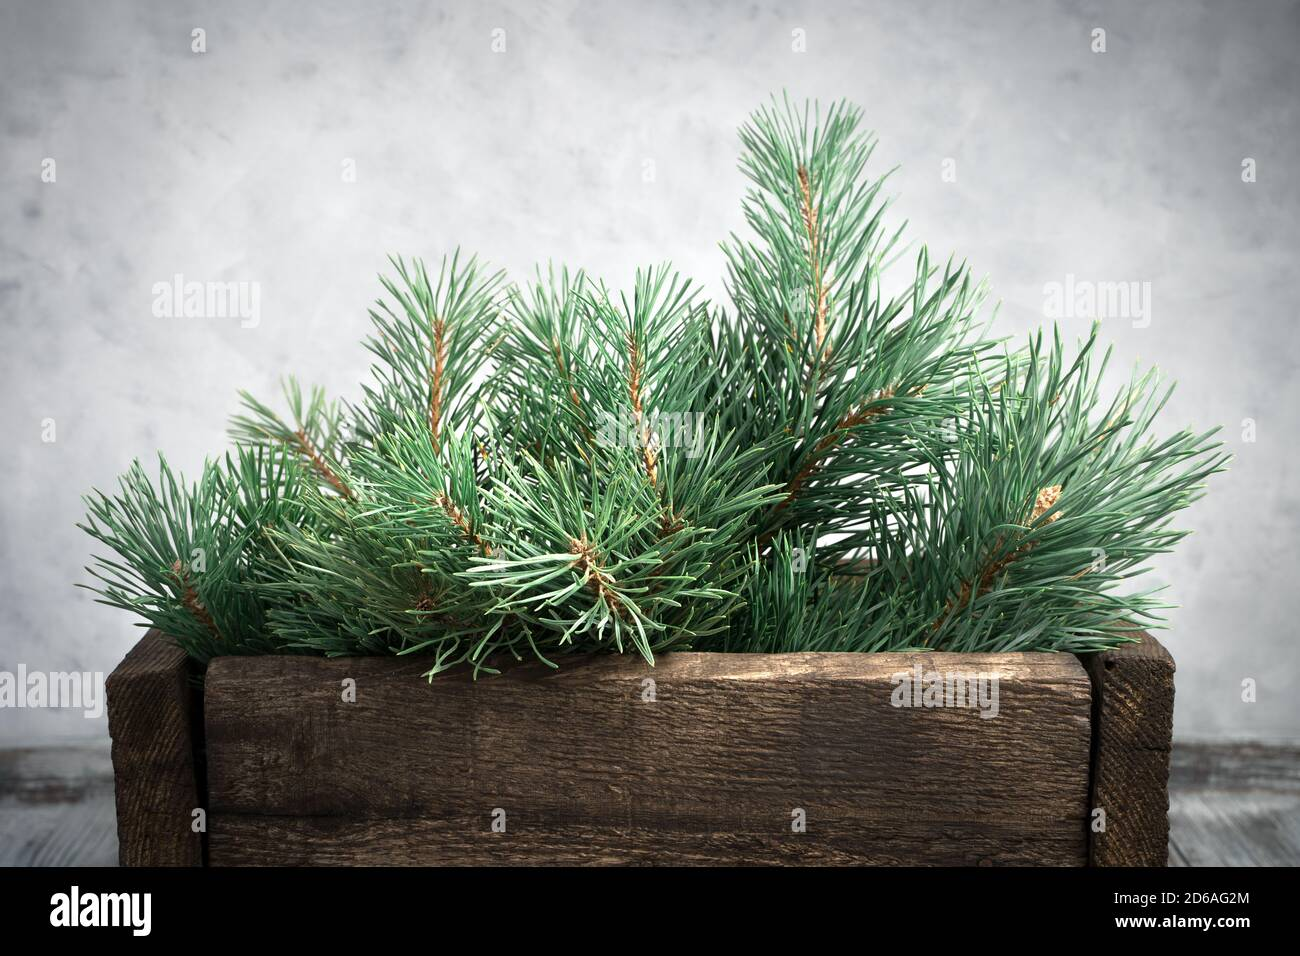 Pinehills Christmas On The Green 2021 Happy New Year 2021 And Christmas Green Pine Branches On A Gray Concrete Background Stock Photo Alamy